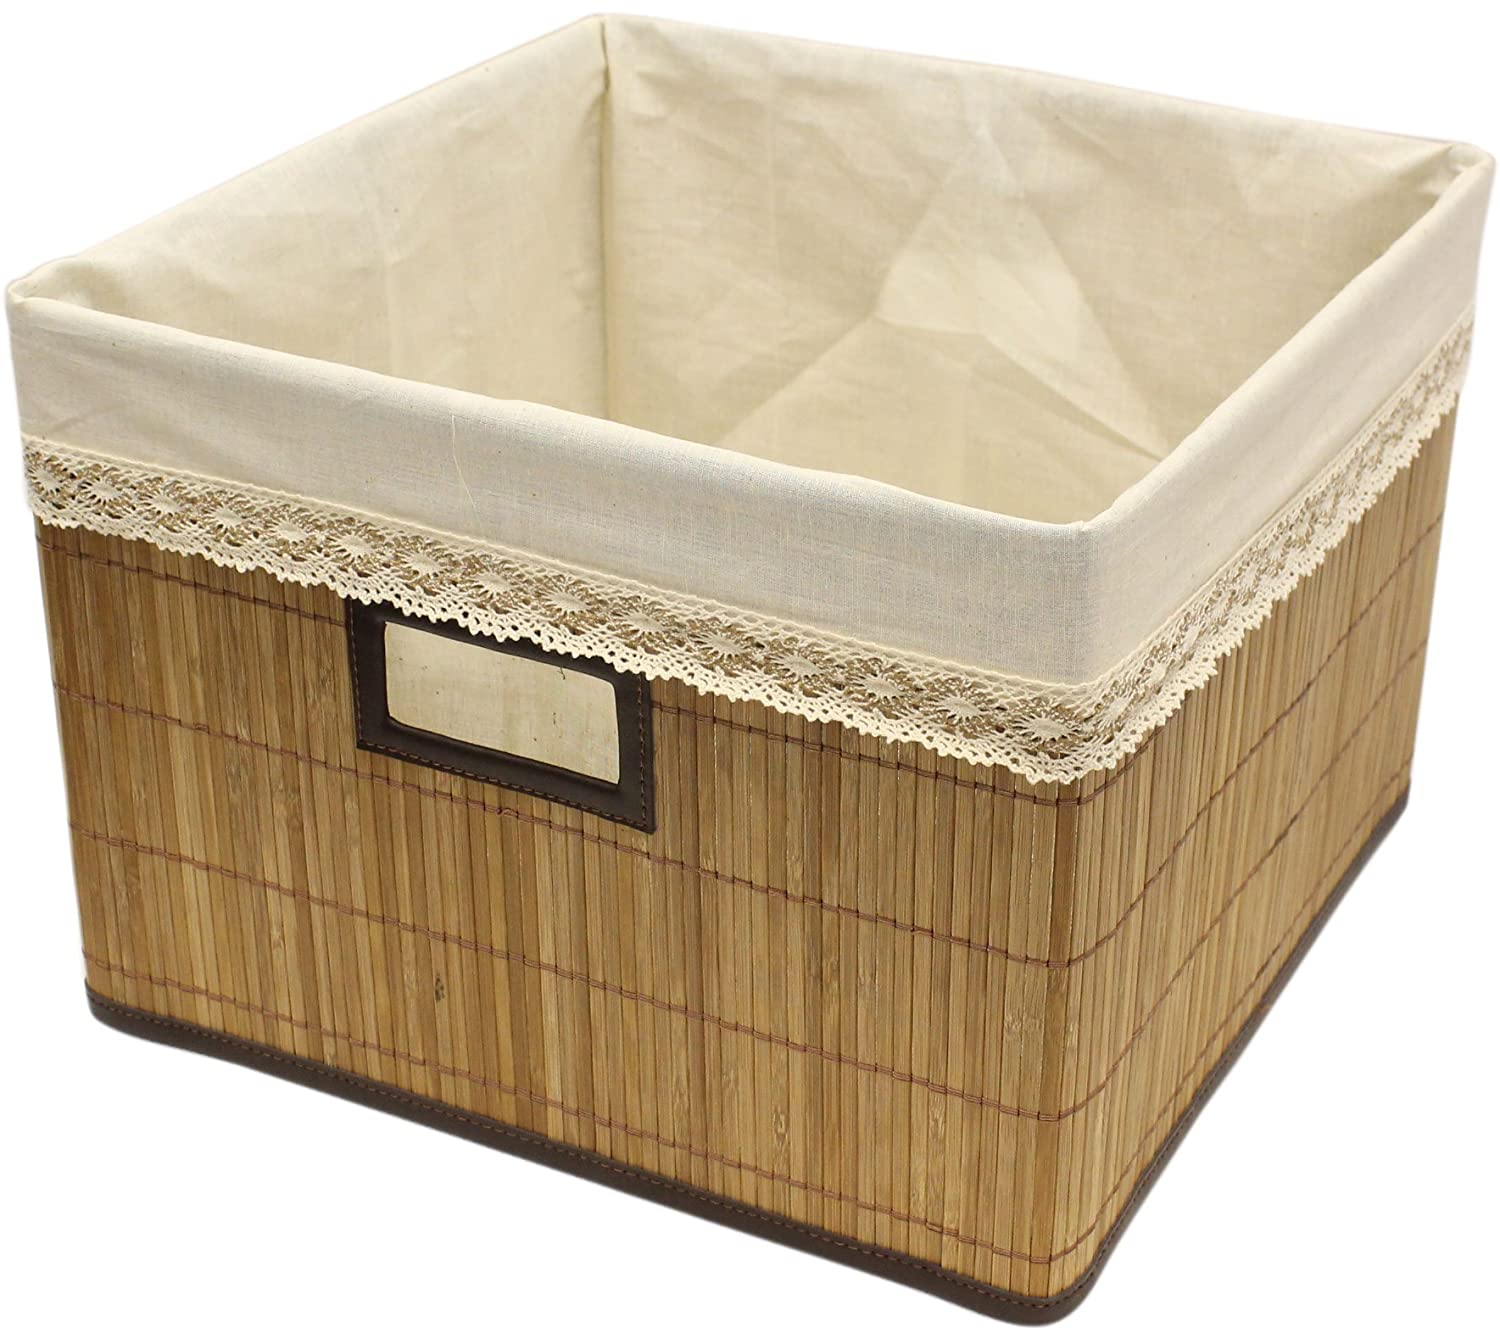 Brown Natural Bamboo Storage Bin Container with Cloth Liner (1, Small) Seta Direct S6723